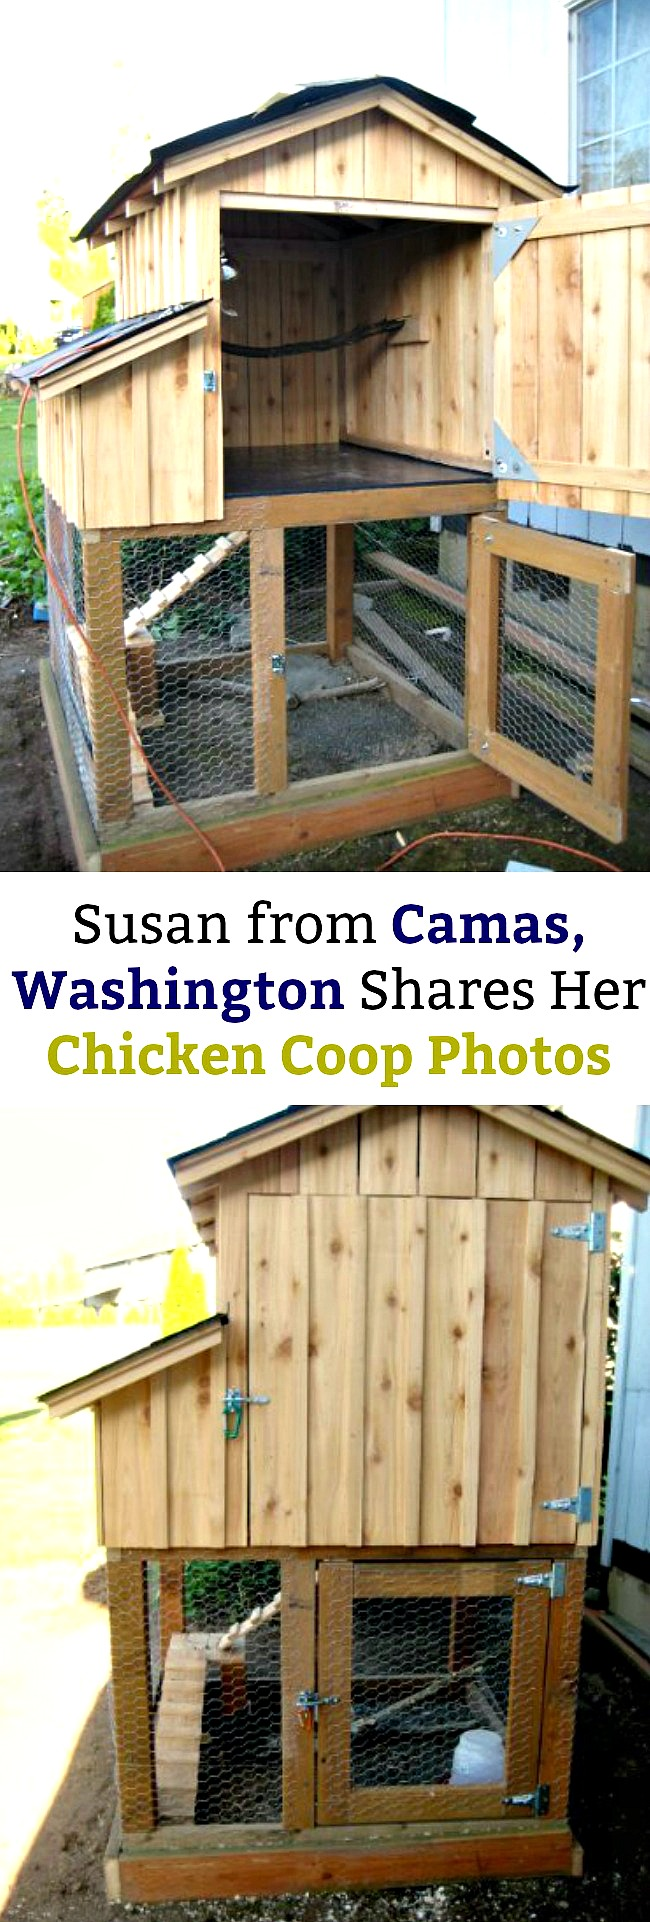 Susan from Camas, Washington Shares Her Chicken Coop Photos